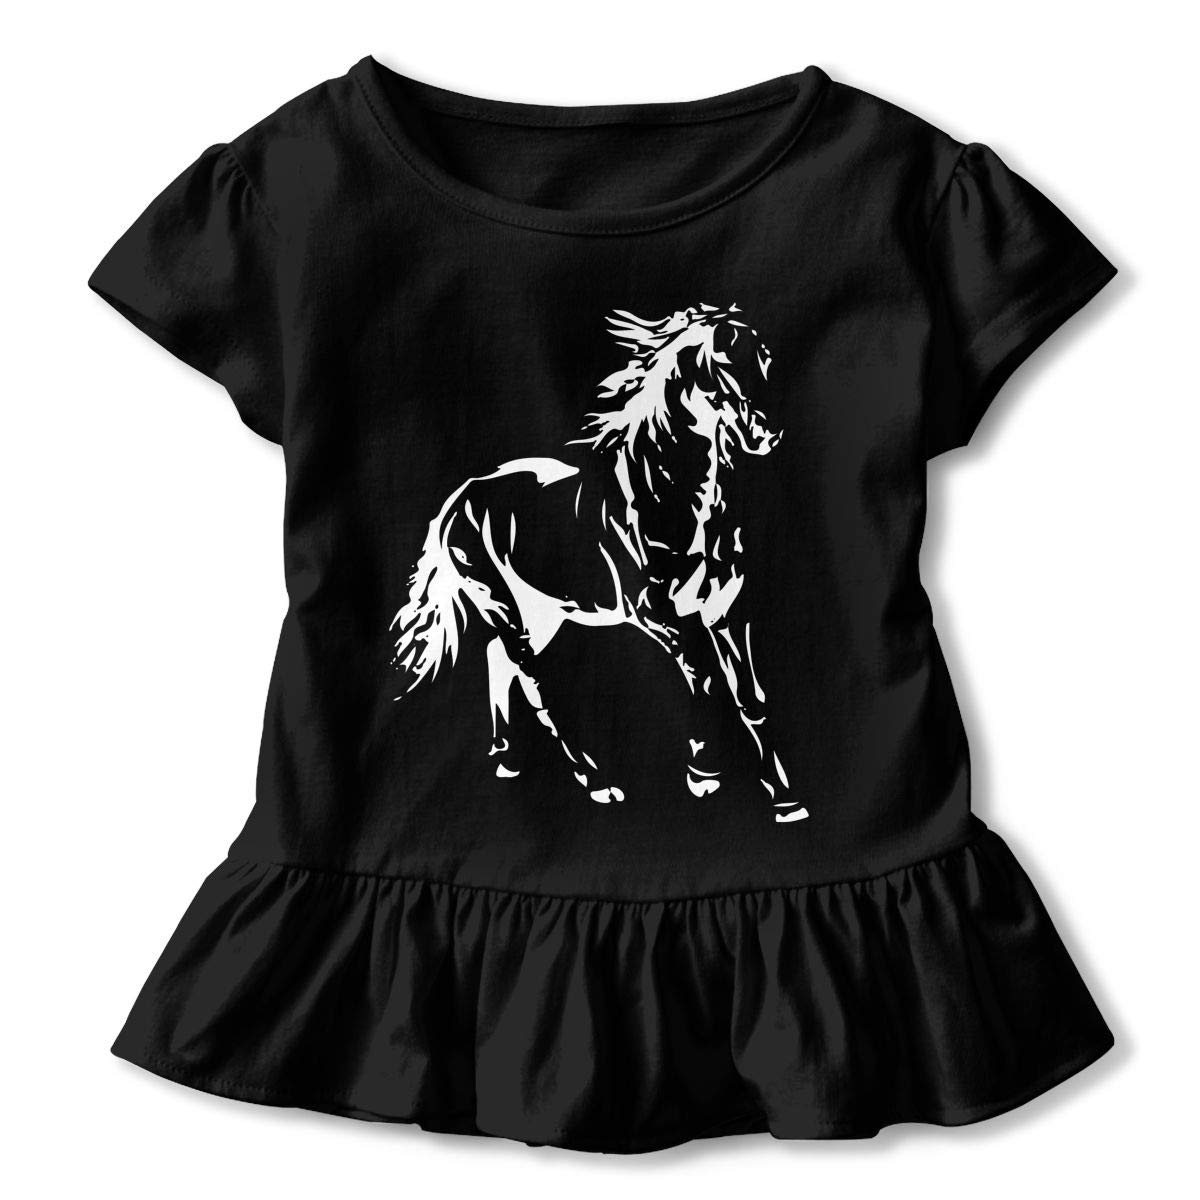 HYBDX9T Little Girls White Horse Funny Short Sleeve Cotton T Shirts Basic Tops Tee Clothes